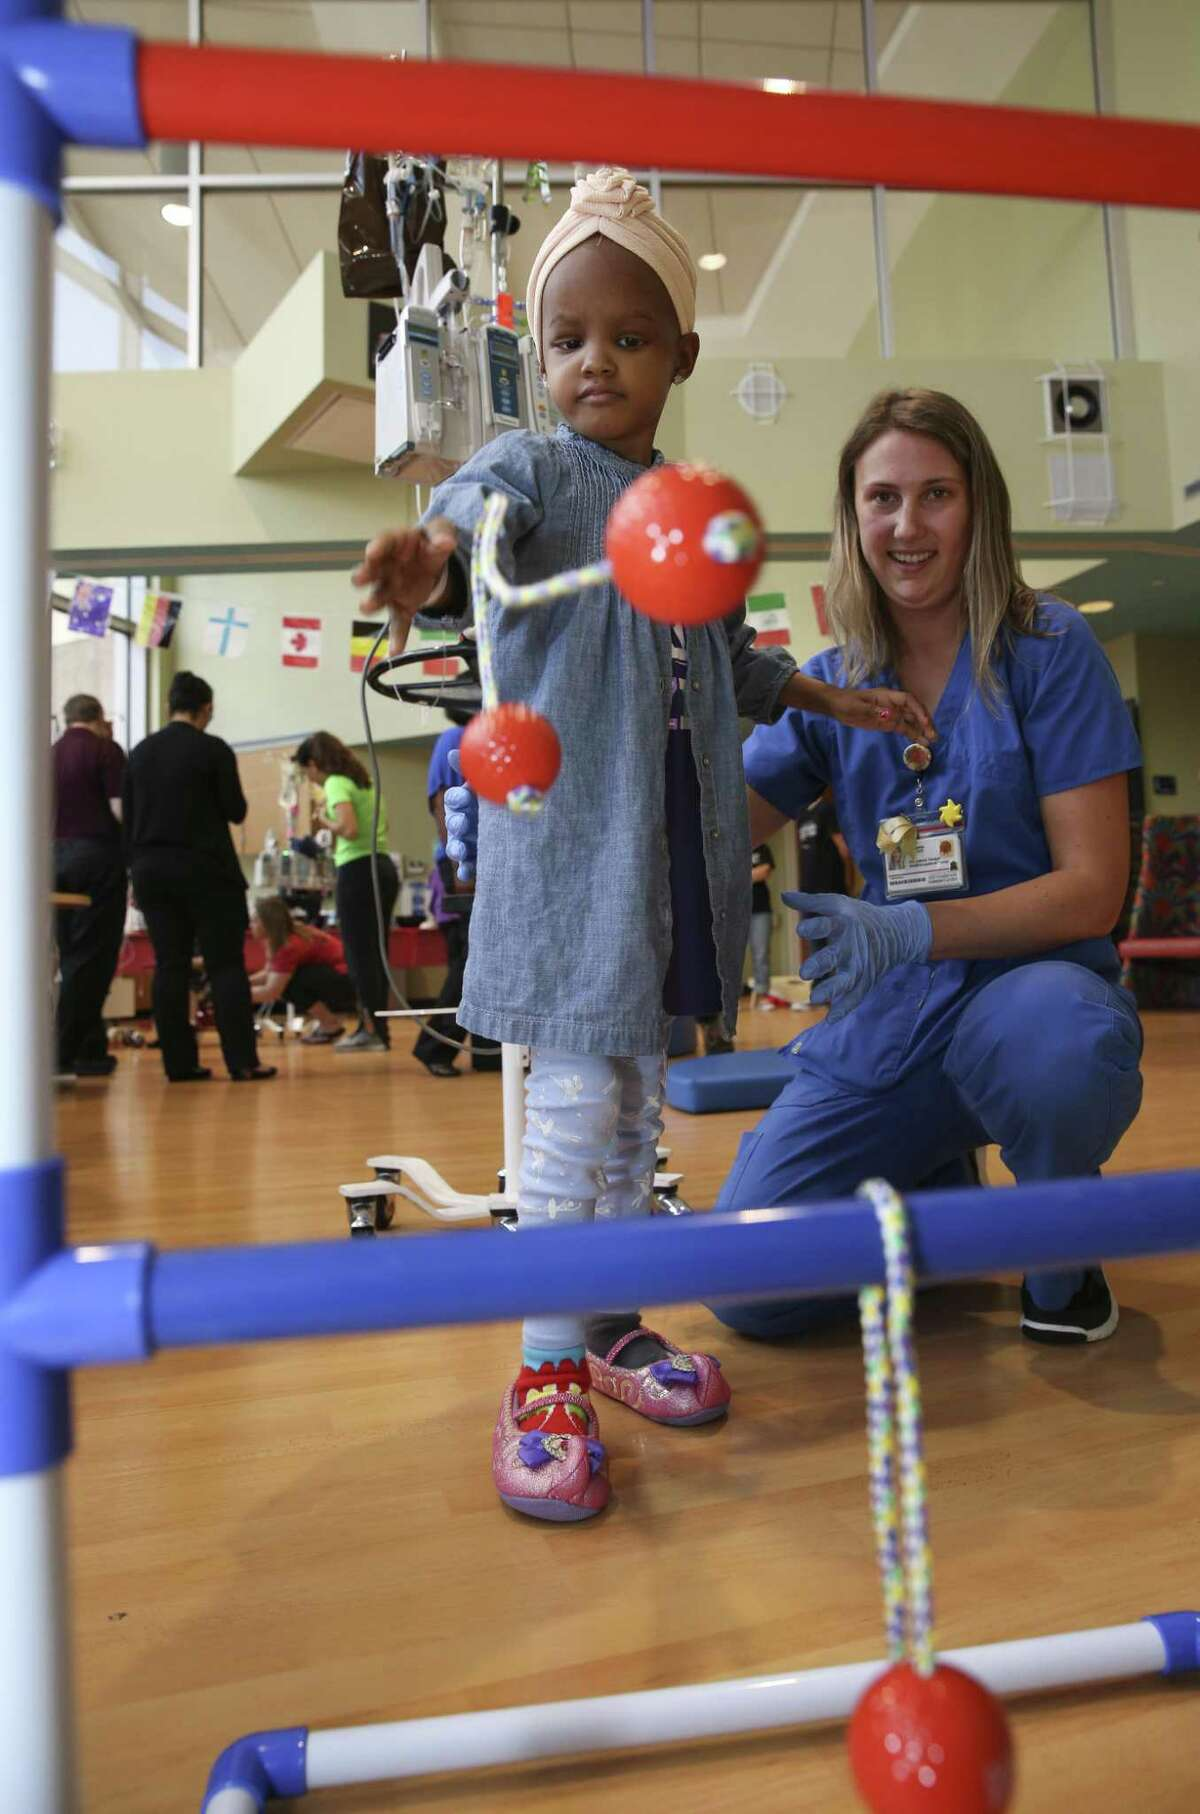 Lauryn Criswell, 5, plays an obstable game with MD Anderson Occupational Therapist Janet Dempsey at MD Anderson on Thursday, June 28, 2018, in Houston. The ?